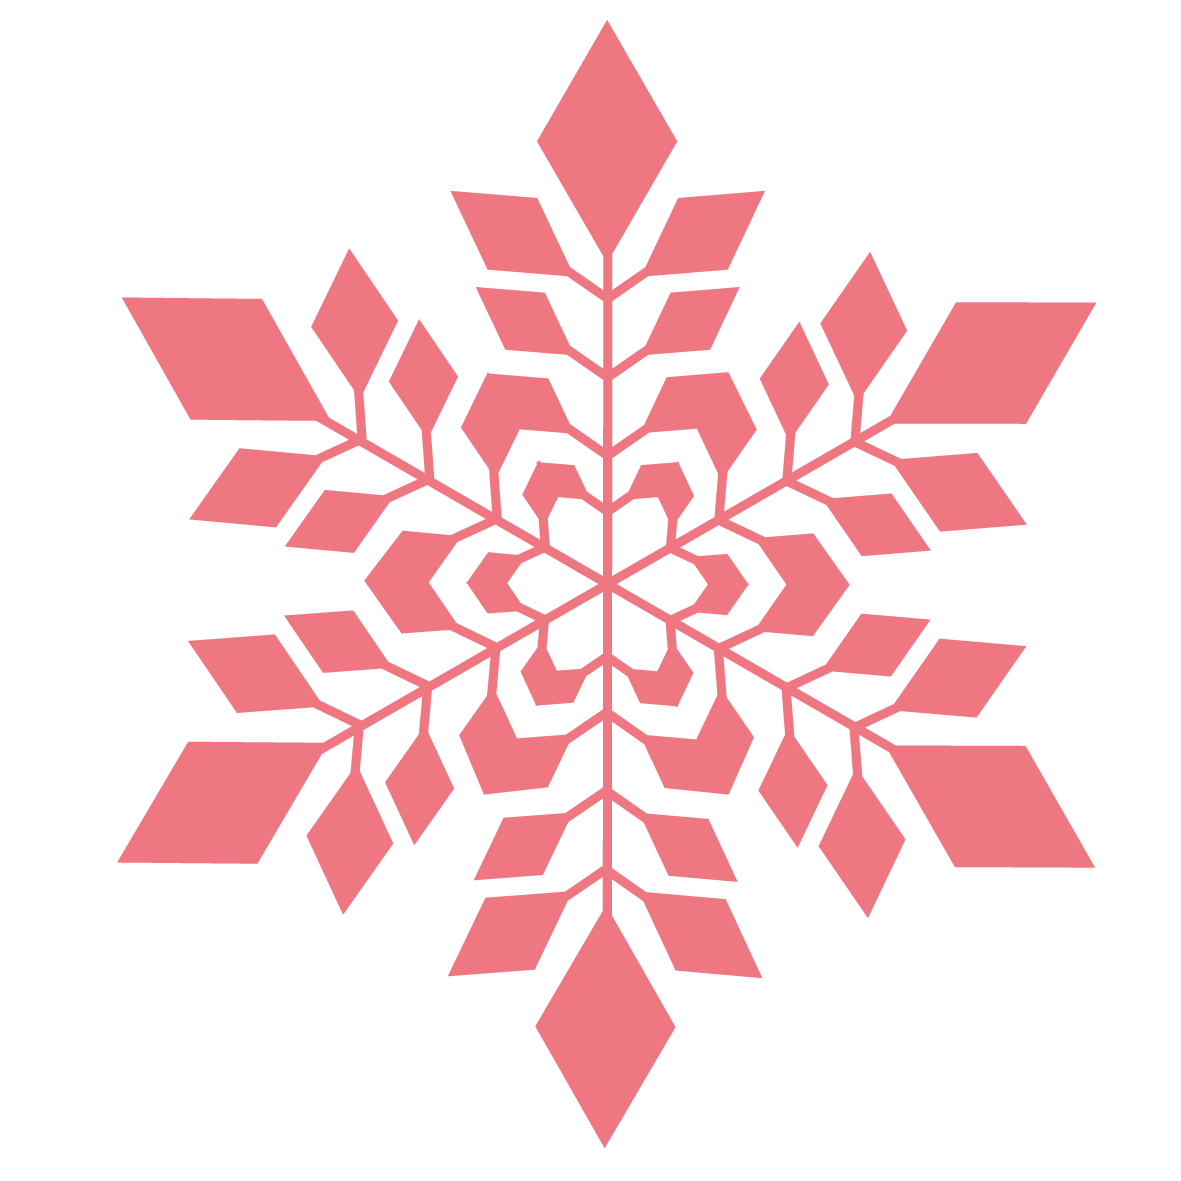 Snowflake Png Transparent Snowflake are png files White Snowflake Transparent Background